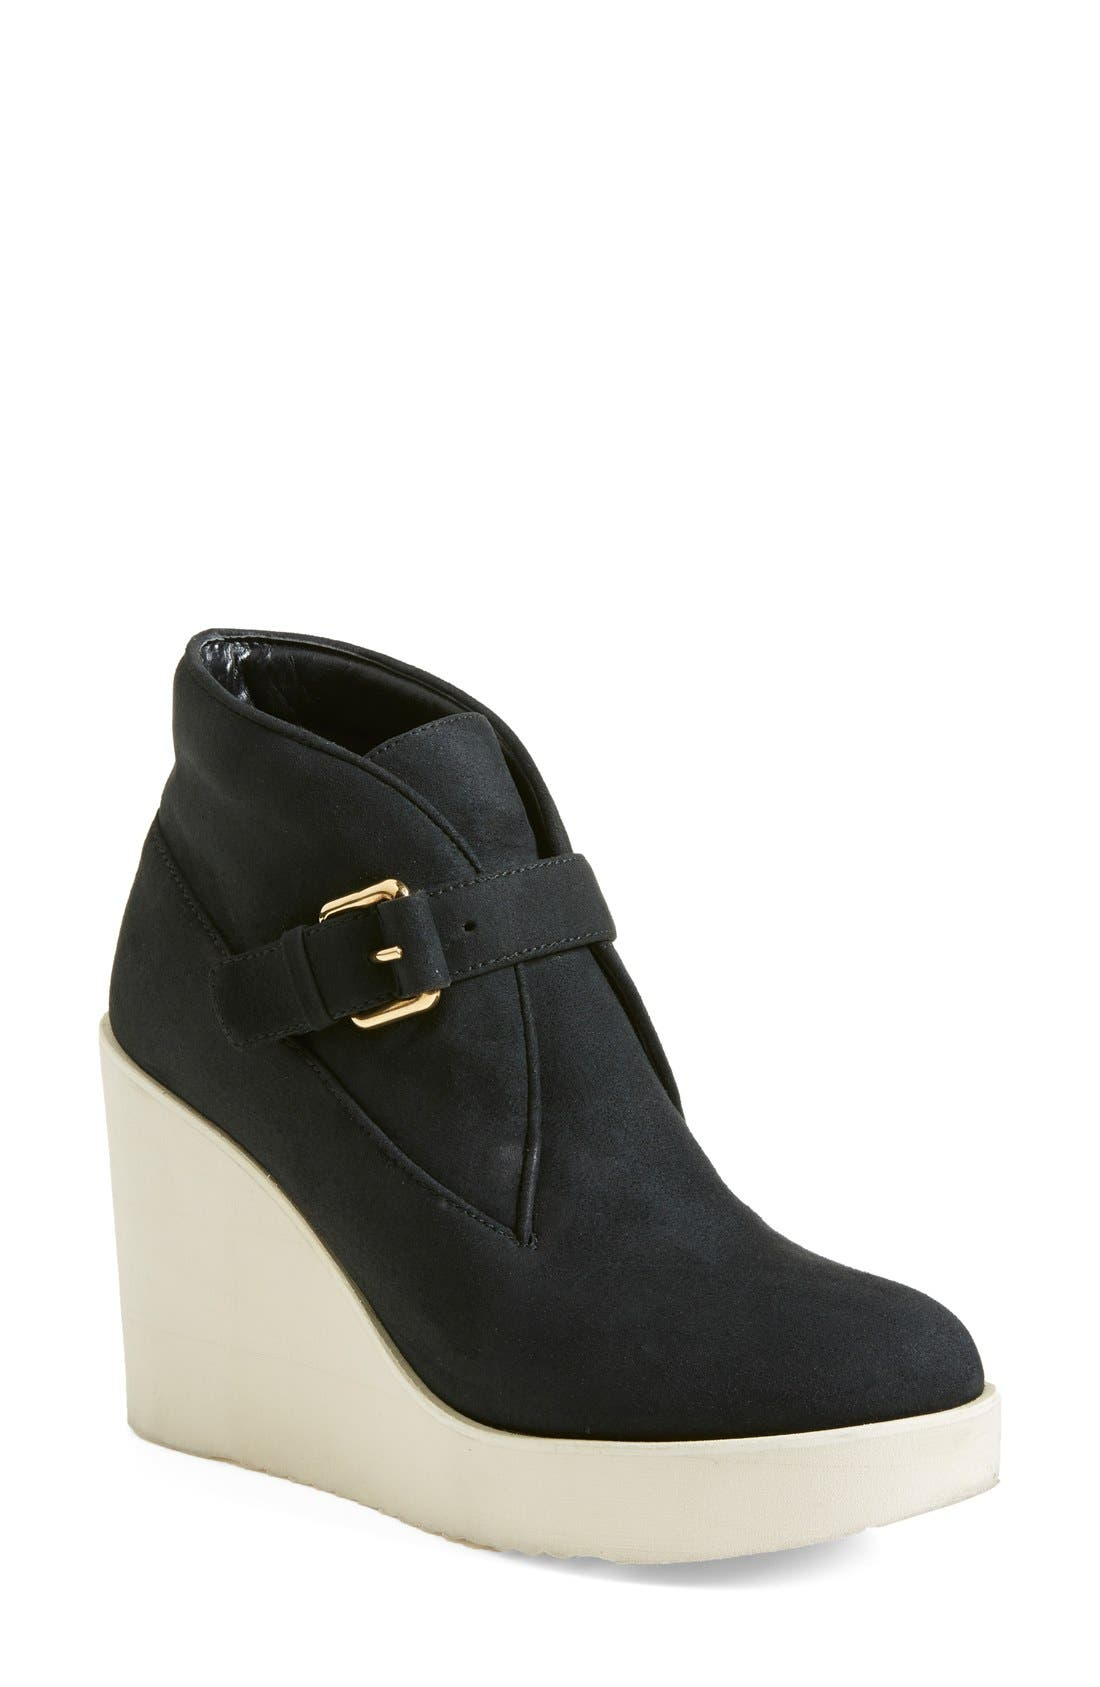 Alternate Image 1 Selected - Stella McCartney Monk Strap Wedge Bootie (Women)